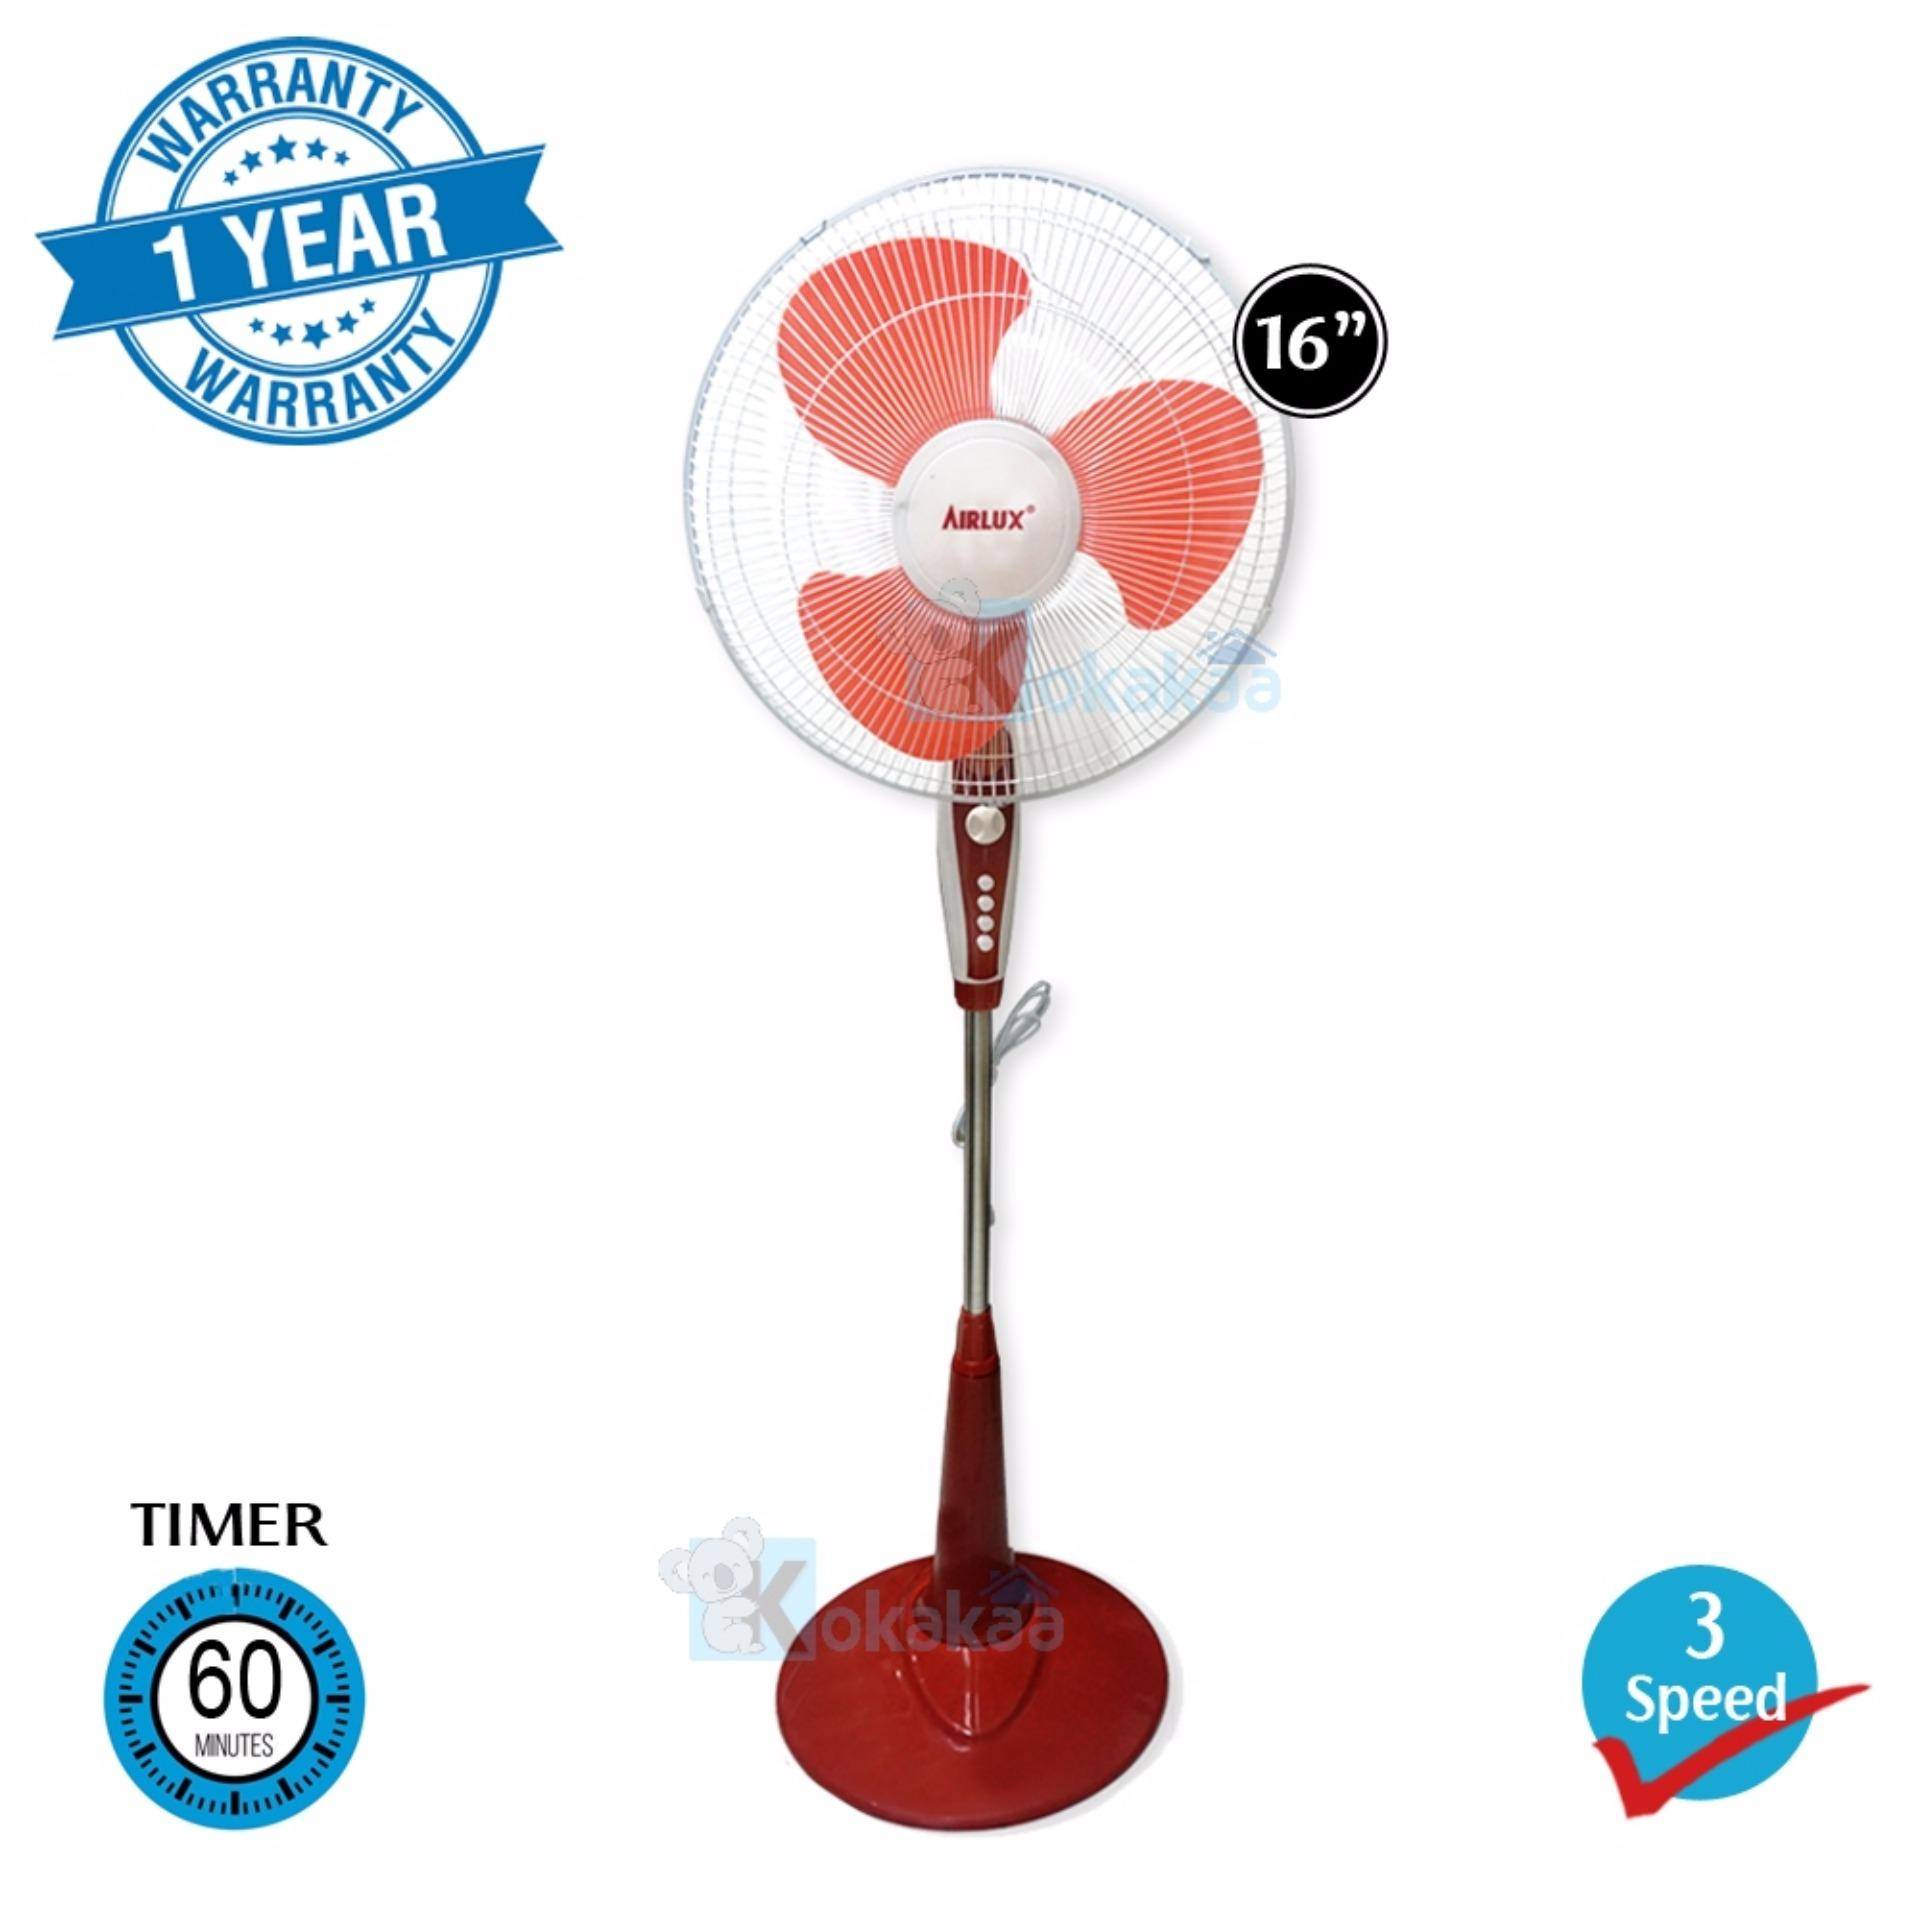 The Cheapest Price Kipas Angin Berdiri Stand Fan Td 1600 16 Cosmos 2 In 1 Inch Sbi Airlux Asf 617 W Kaki Bulat